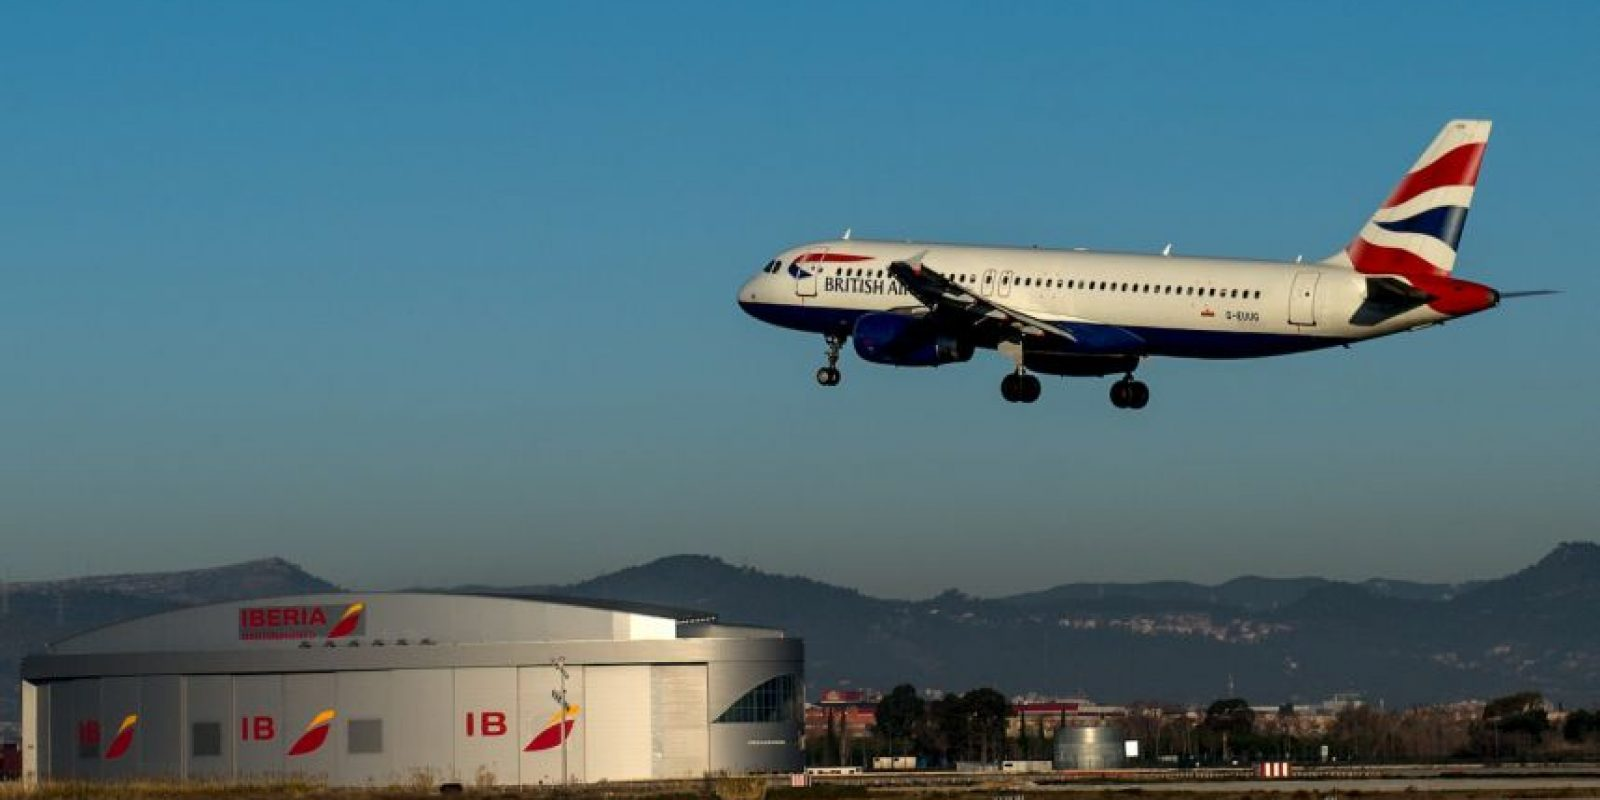 British Airways-Reino Unido Foto: Getty Images